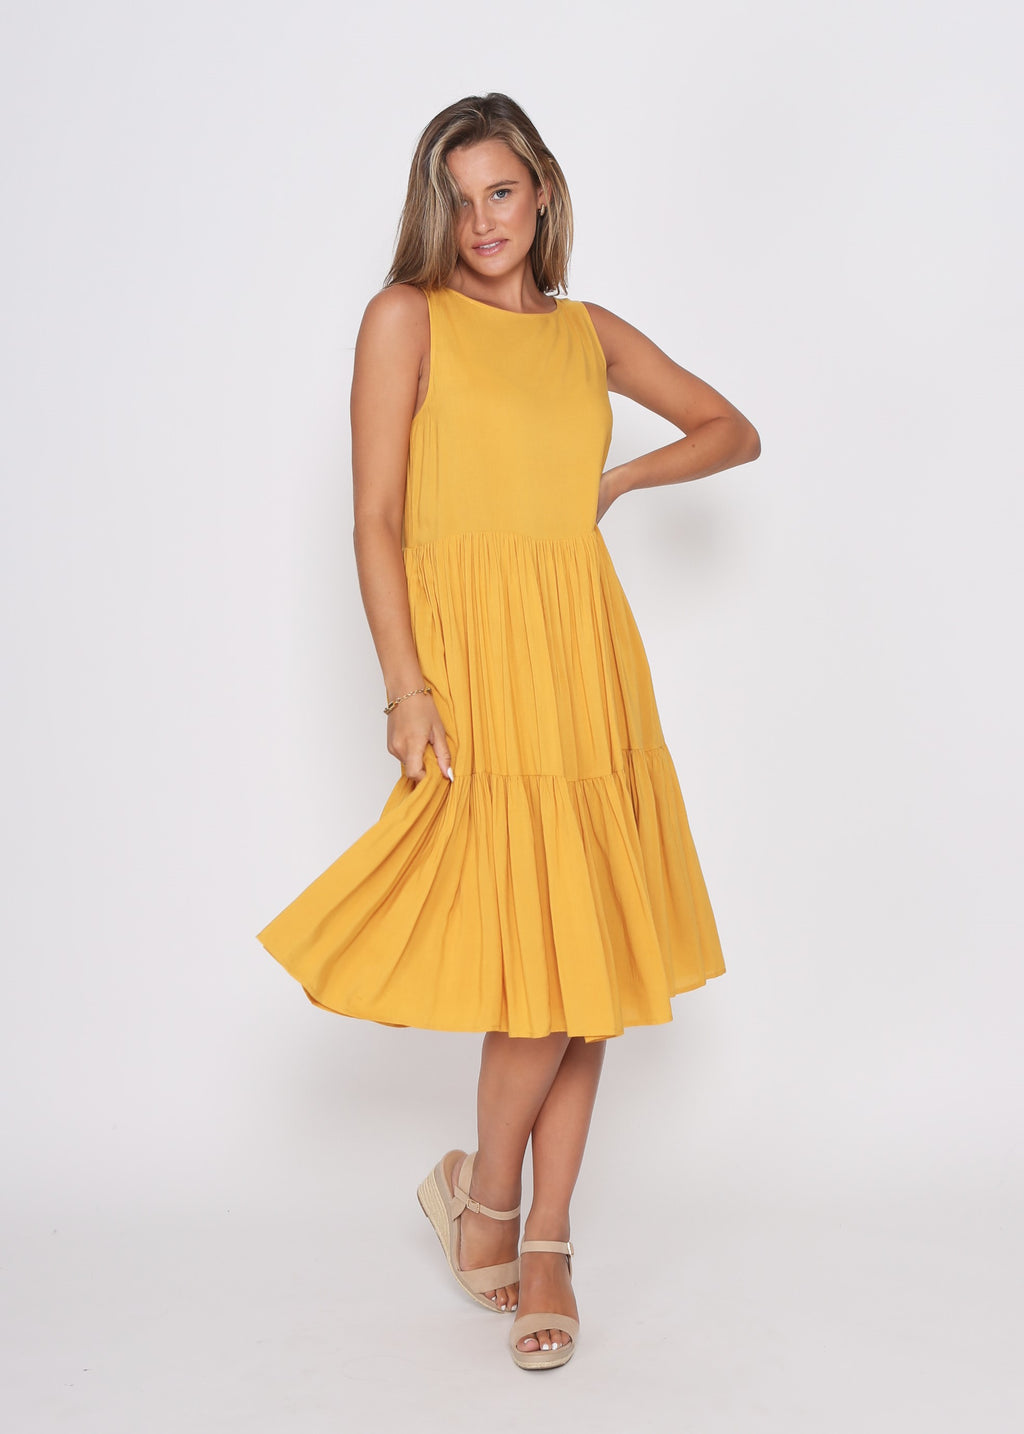 NEW - REESE DRESS - MUSTARD